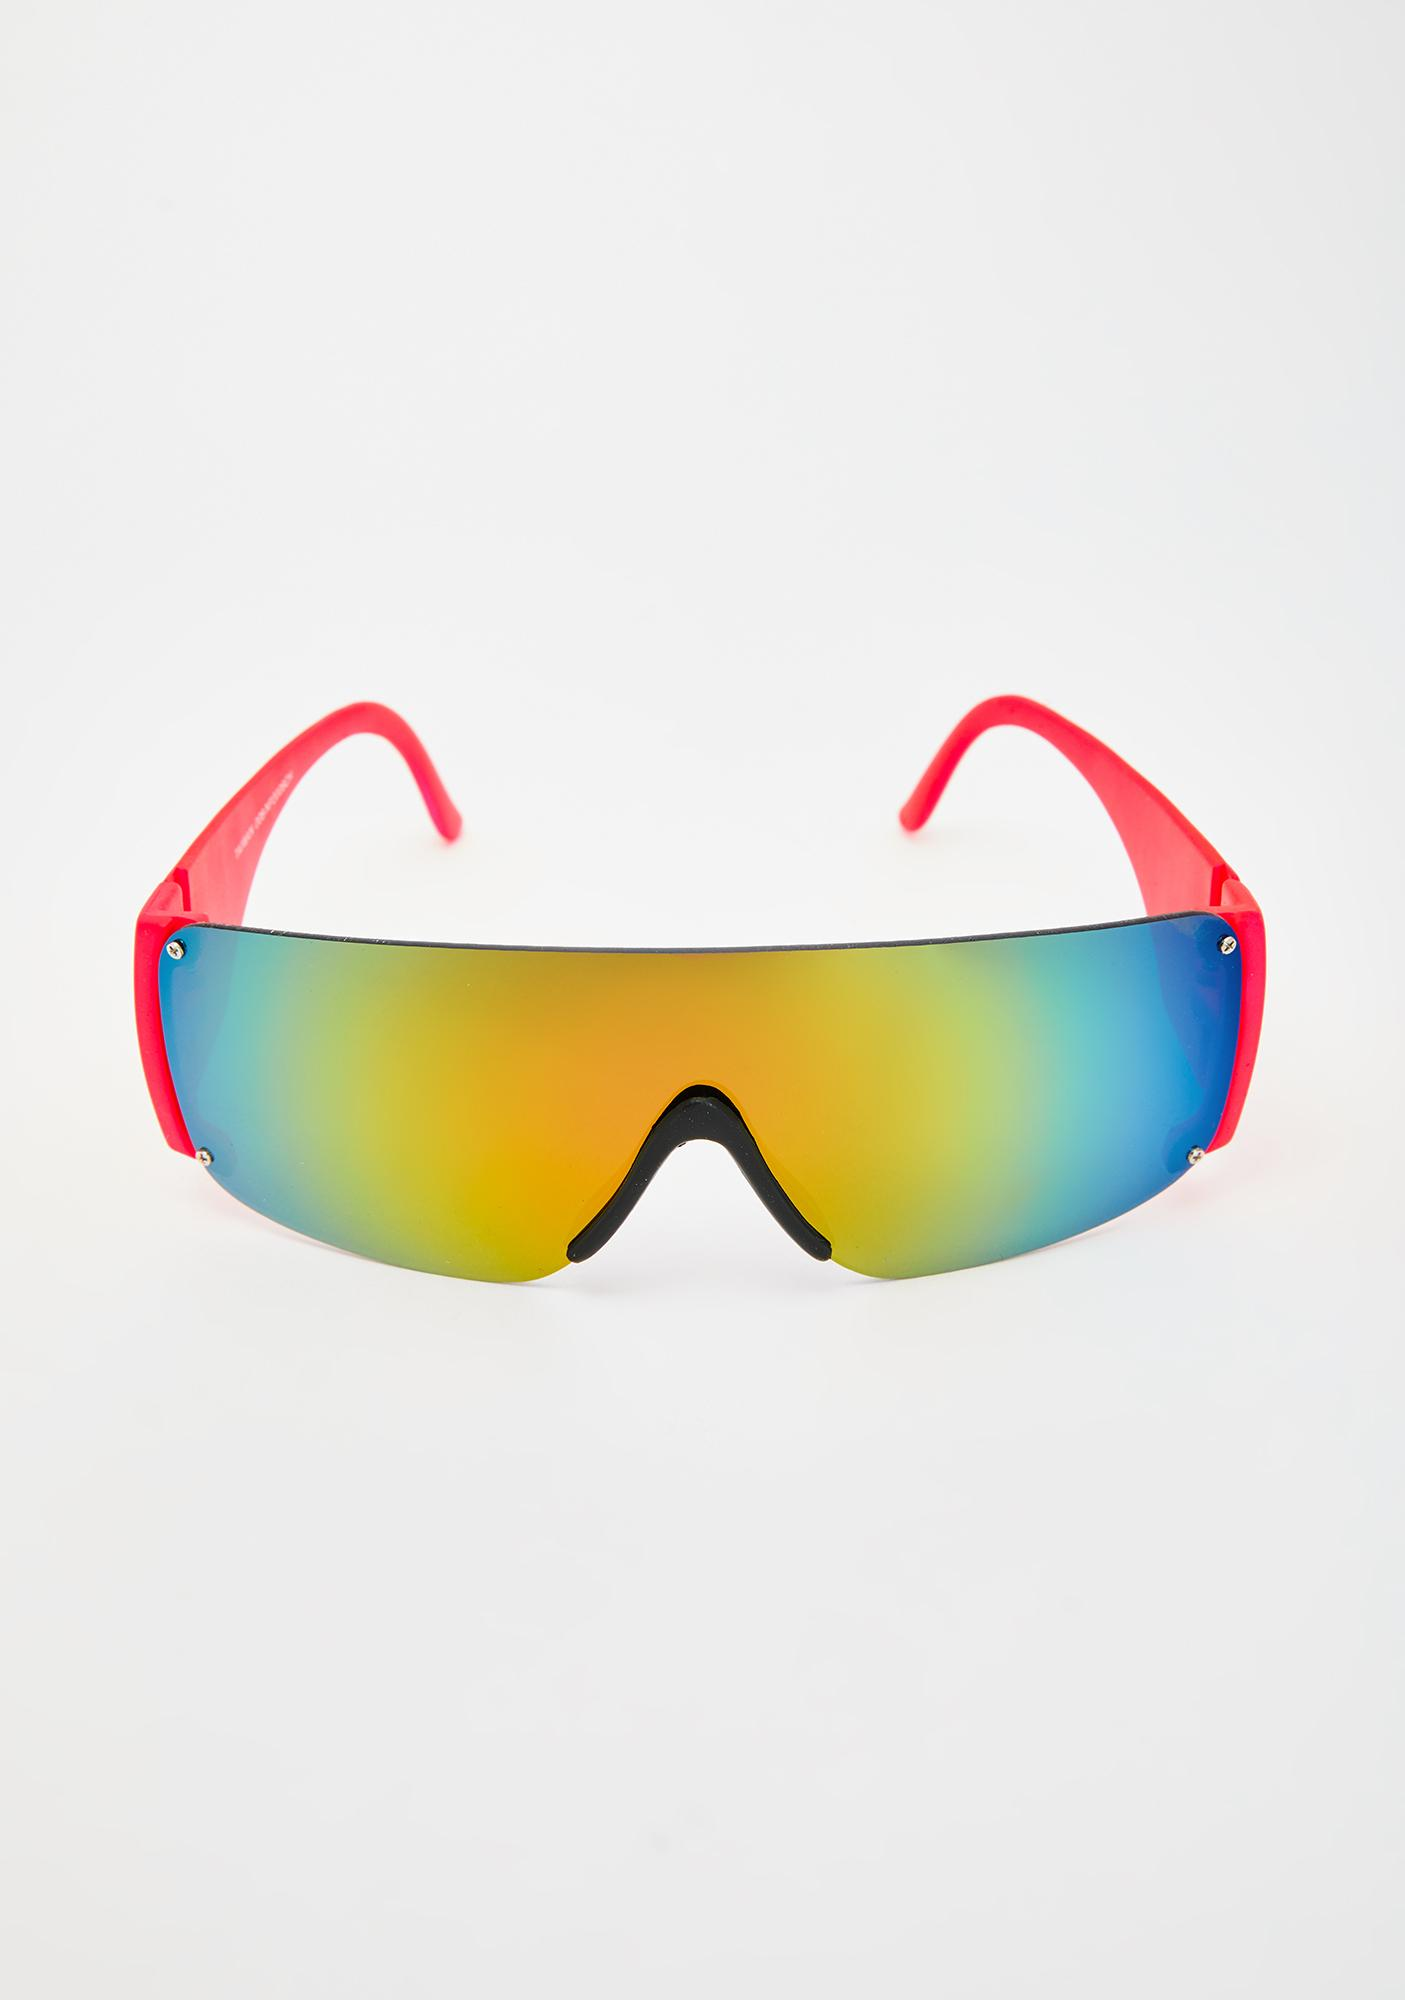 Good Times Eyewear Red Neon Shield Sunglasses